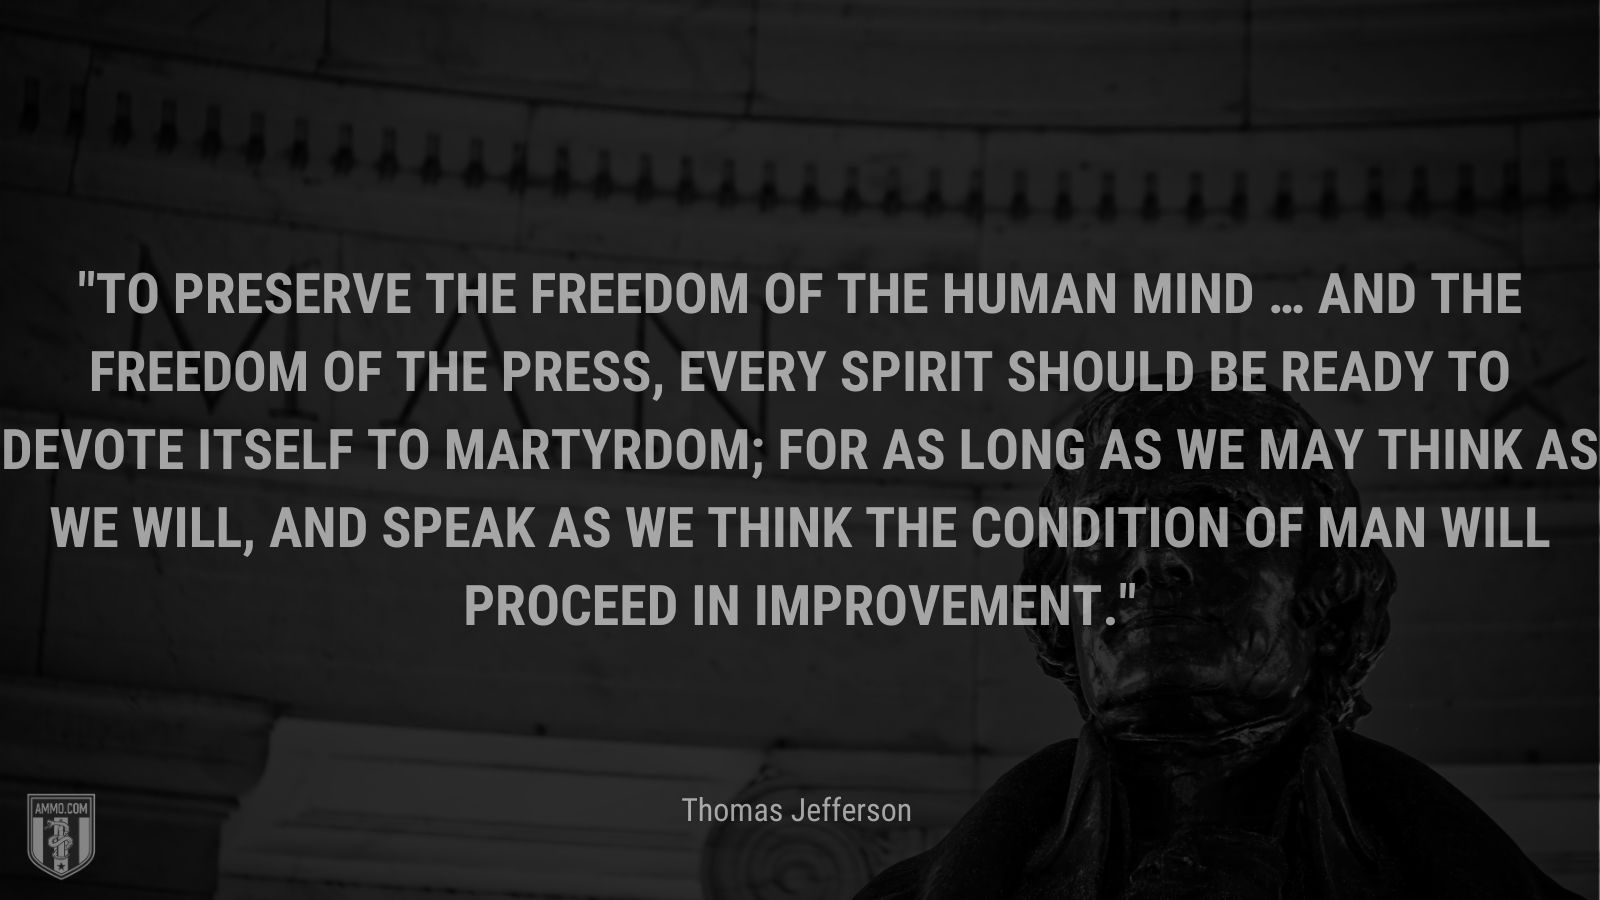 """""""To preserve the freedom of the human mind … and the freedom of the press, every spirit should be ready to devote itself to martyrdom; for as long as we may think as we will, and speak as we think the condition of man will proceed in improvement."""" - Thomas Jefferson"""